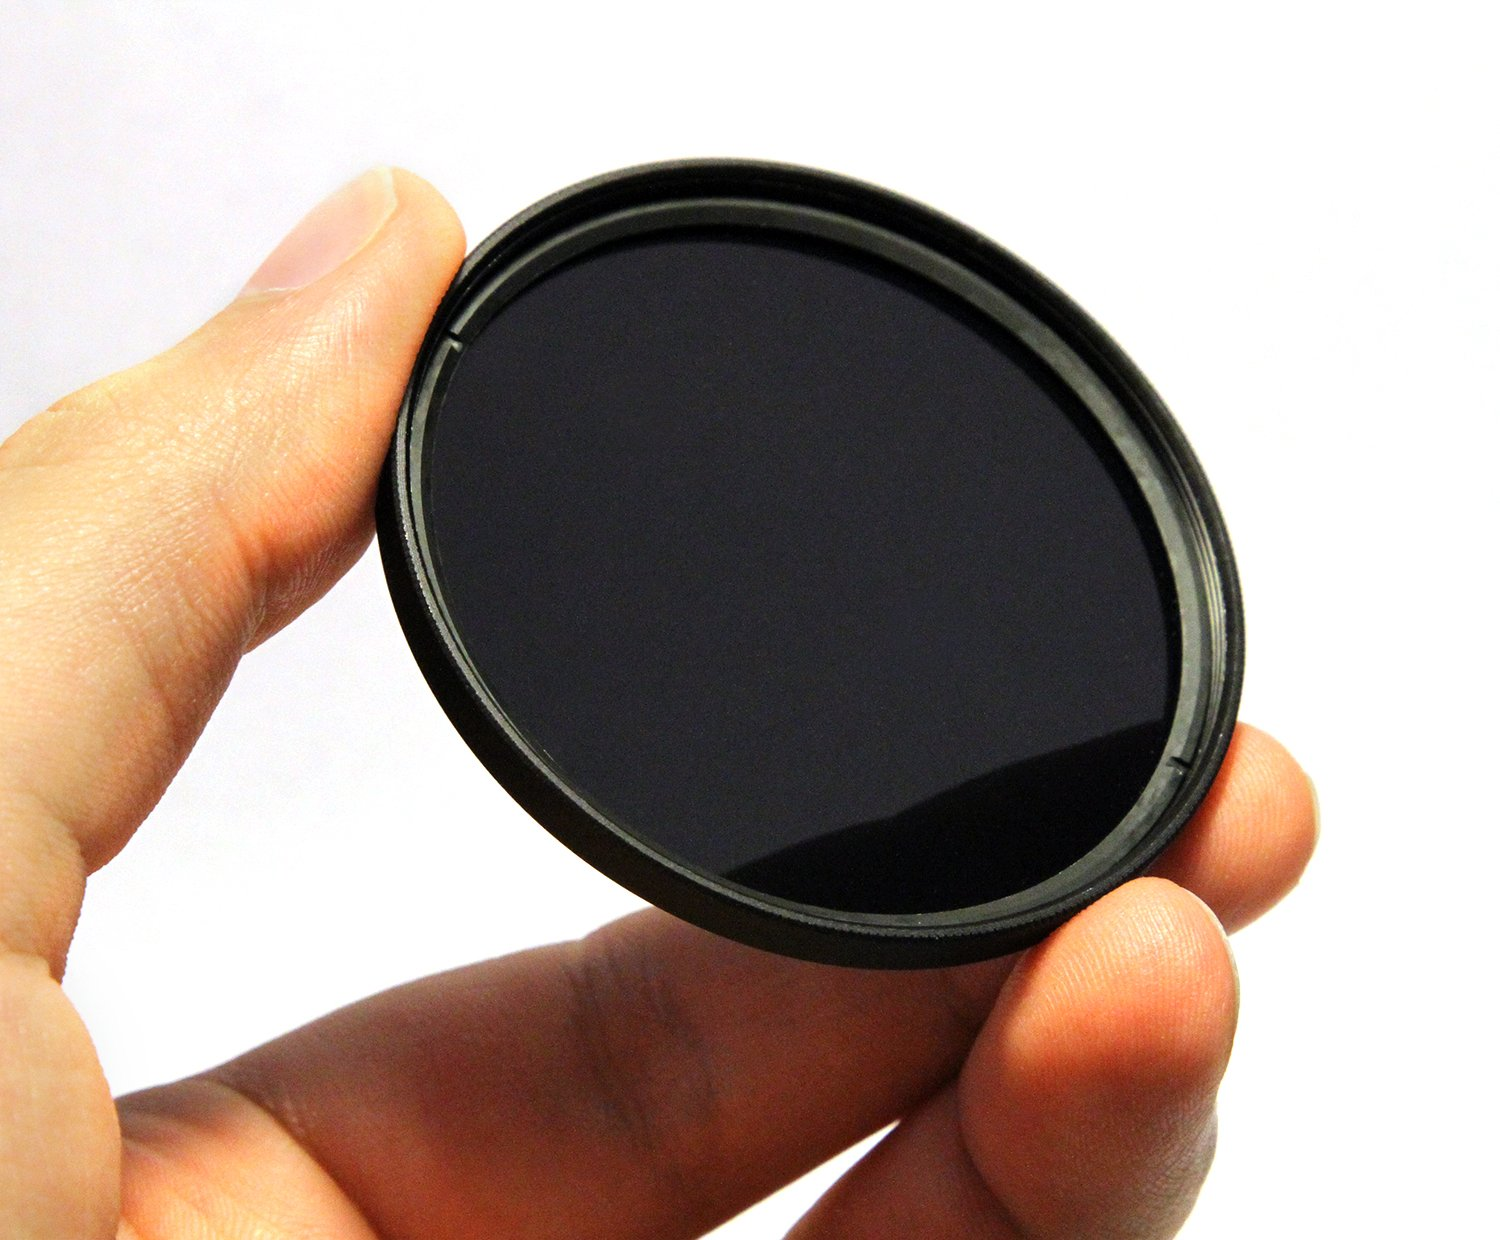 ND8 ND Neutral Density Motion Blur Shutter Speed Filter for Panasonic Lumix VARIO HD 14-140mm / F4.0-5.8 ASPH. / MEGA O.I.S. Lens by PhotoCentral